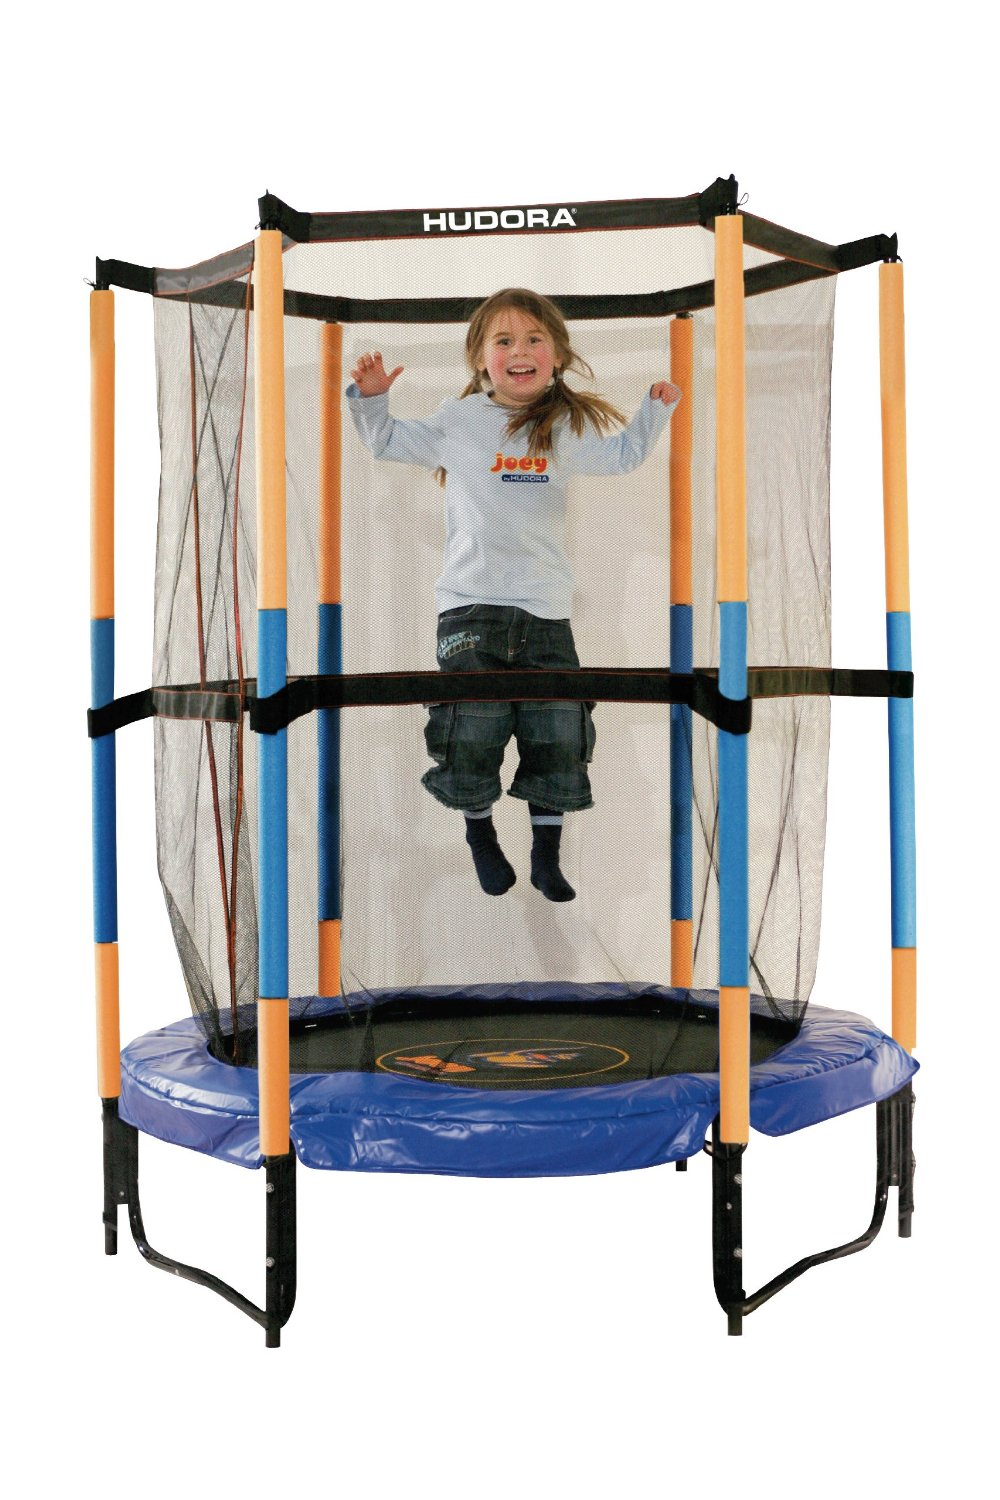 Hudora Kindertrampolin Joey Jump 3.0 140 cm Test